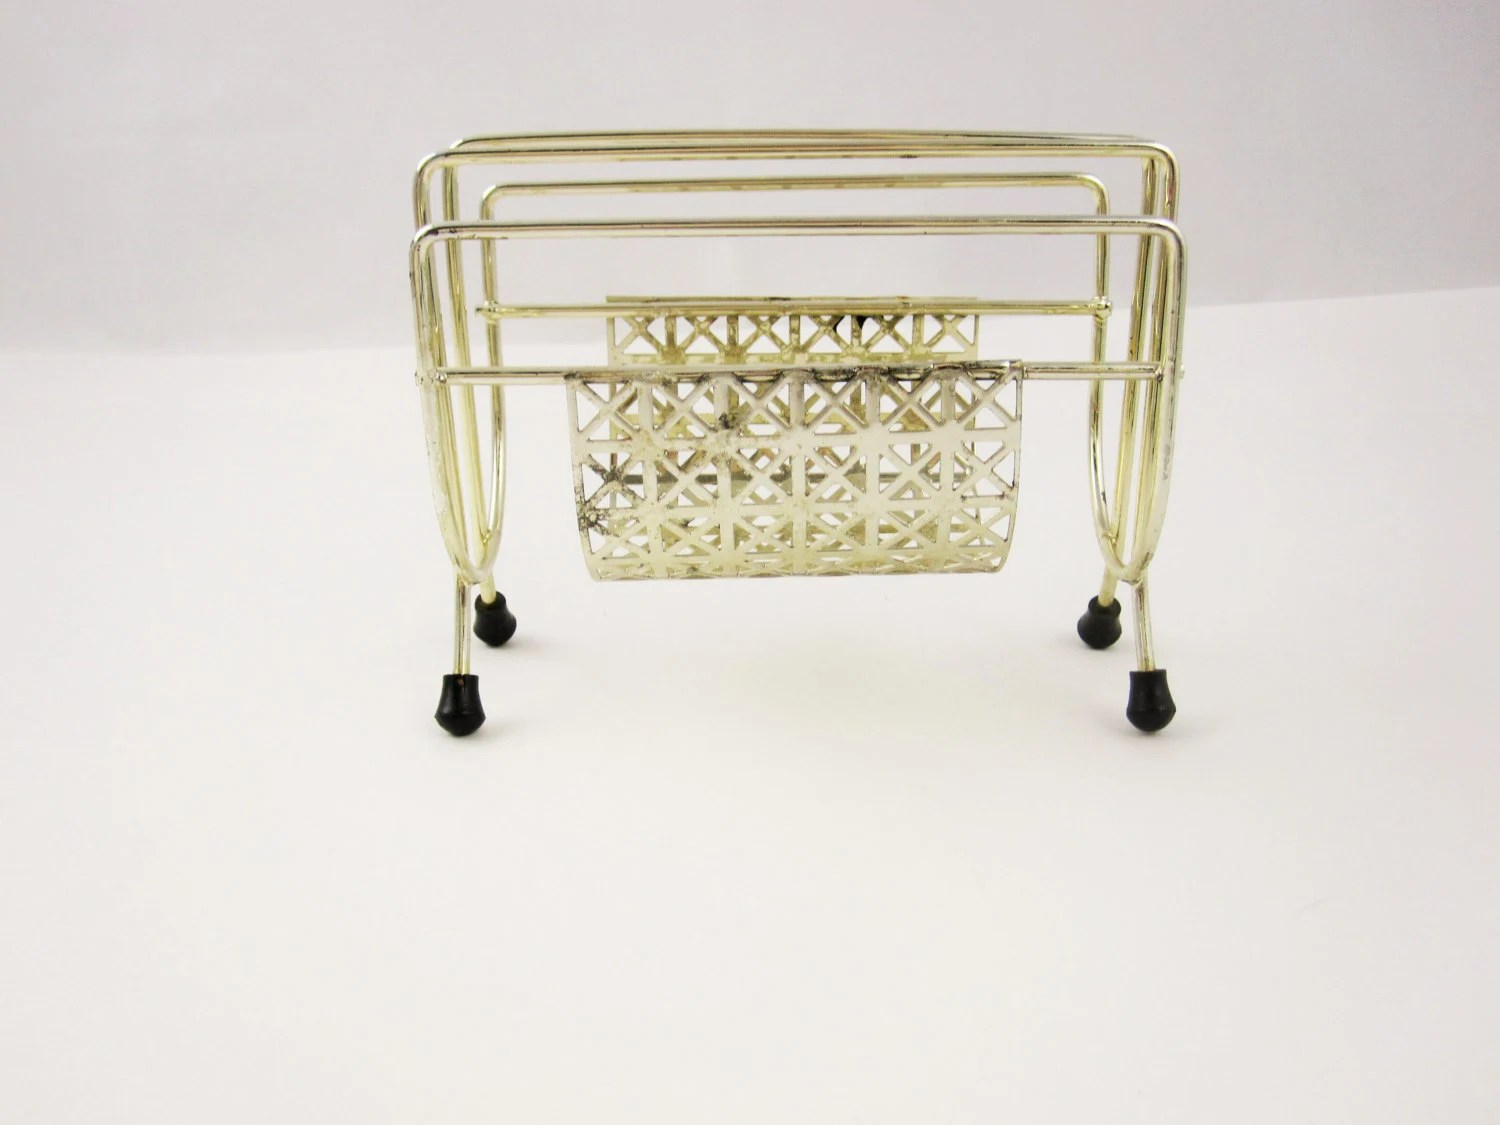 Small Goldtoned Desk Organizer For School Office or Library